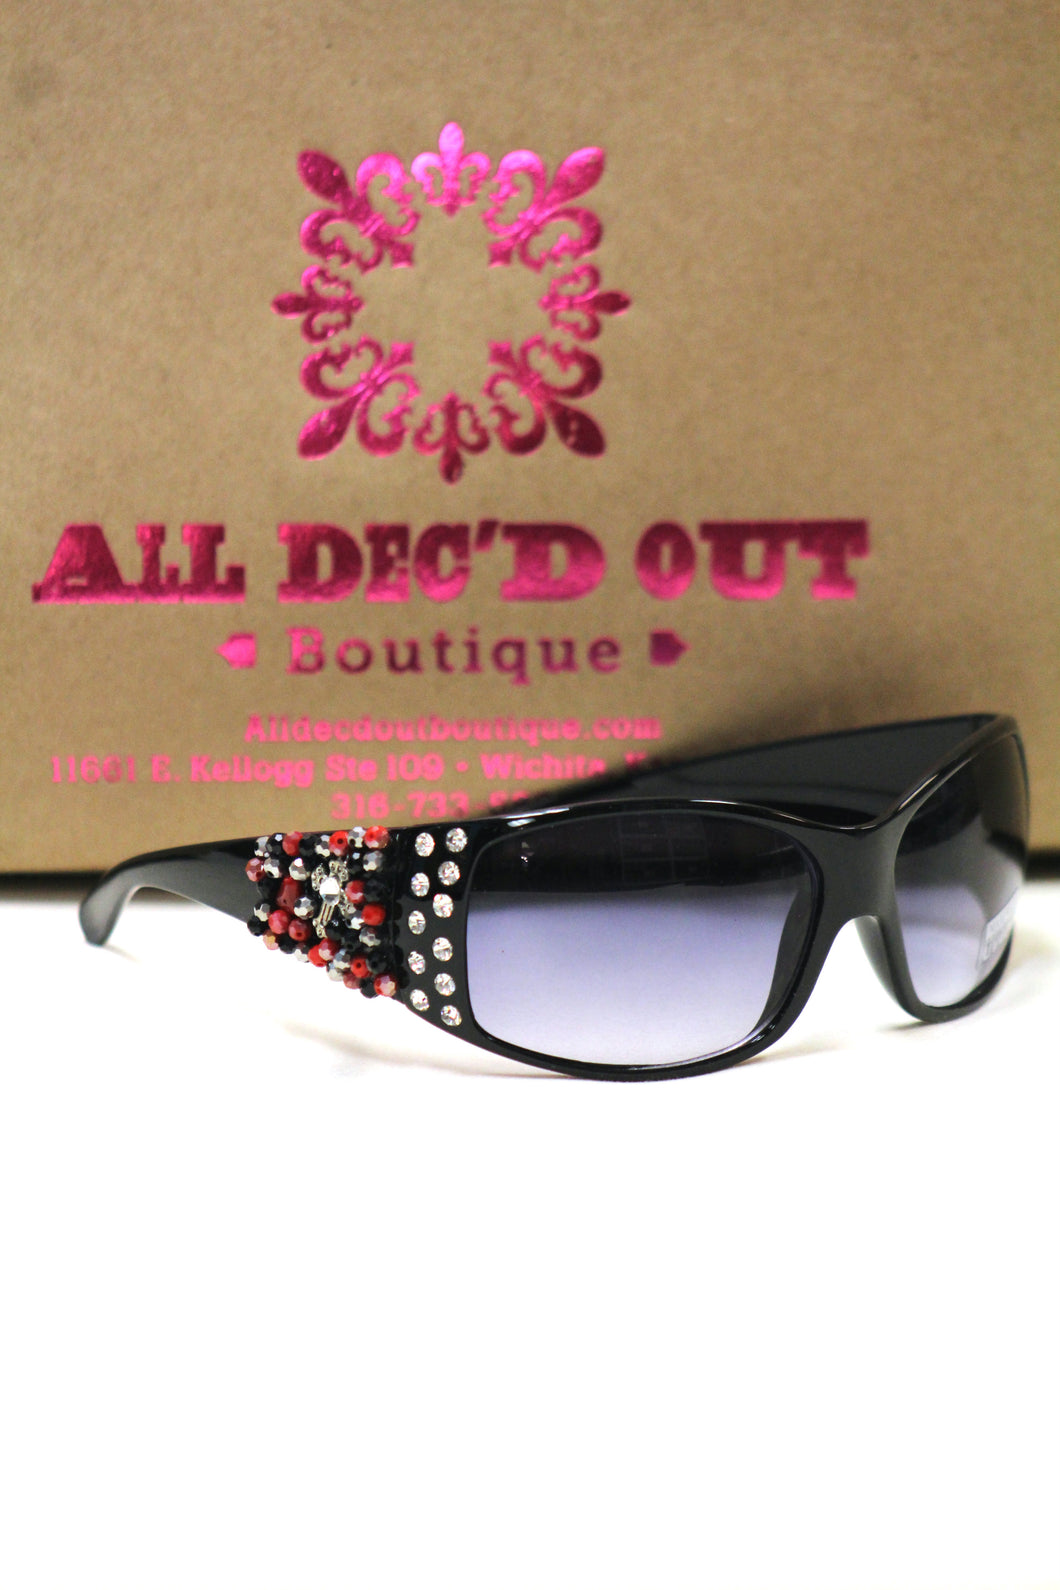 ADO | Customized Sunglasses Black with Red Beads & Silver Cross - All Decd Out